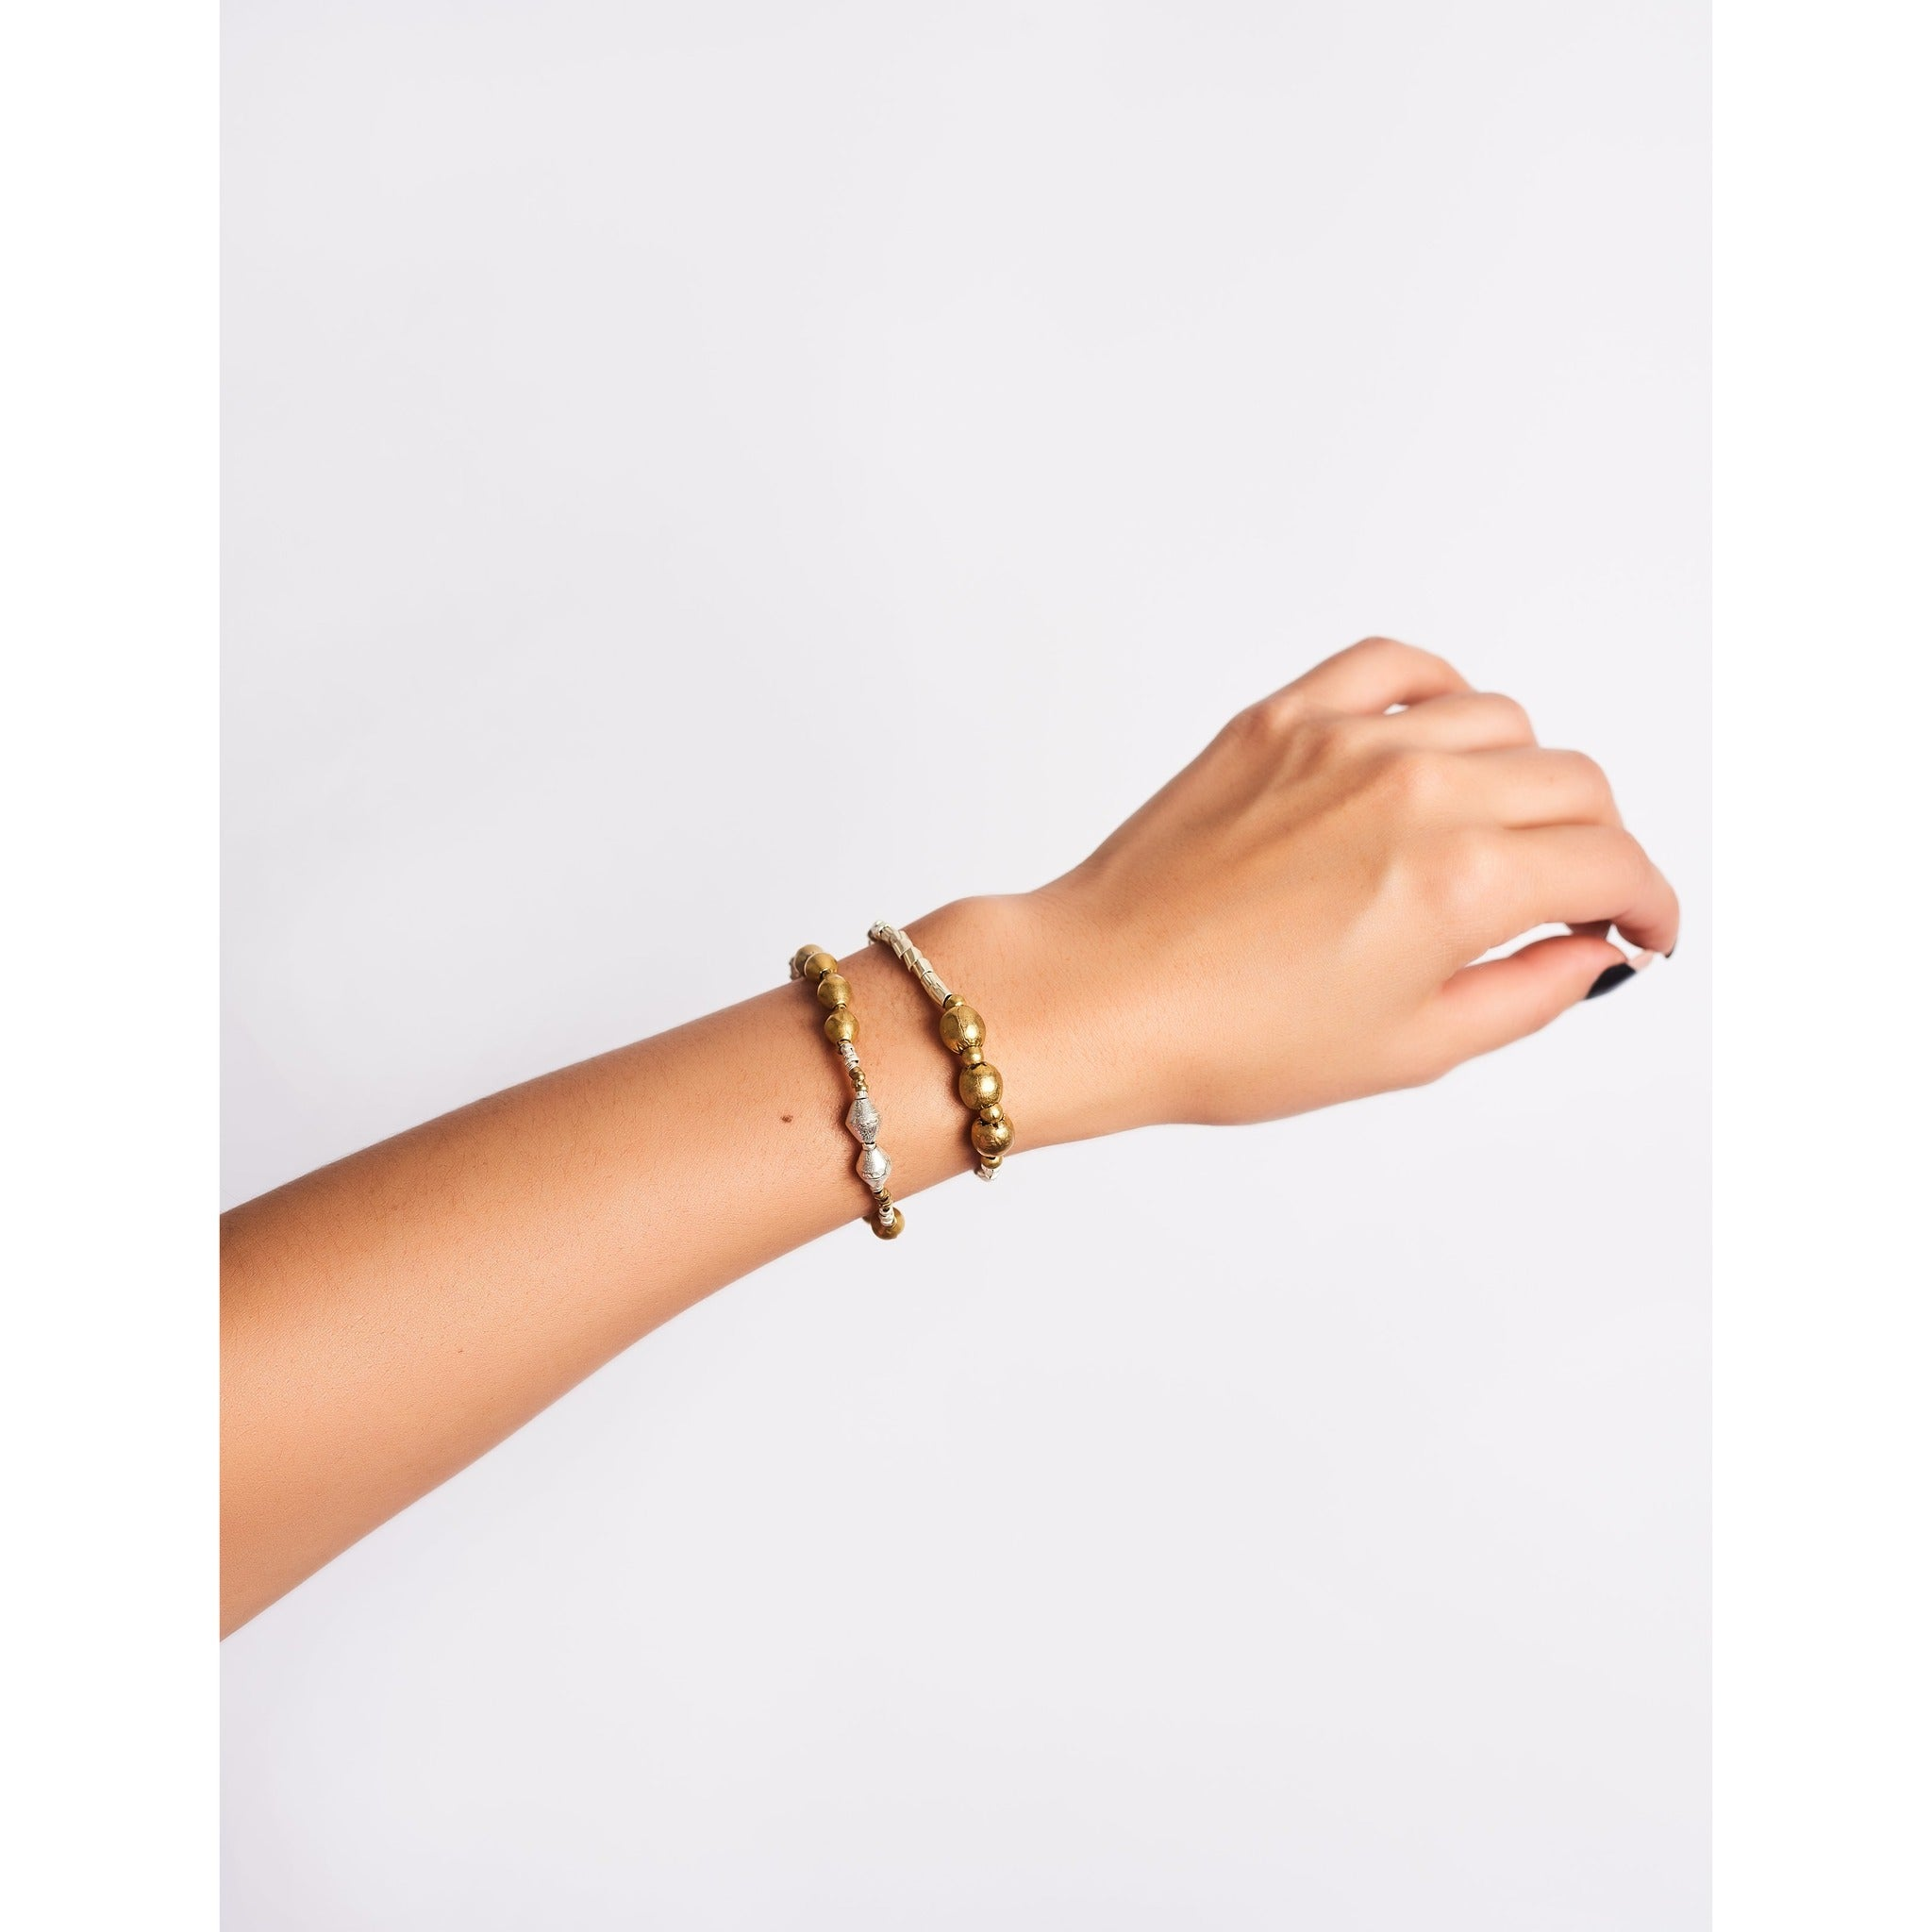 Constellation Bracelet - Shop Collective Goods